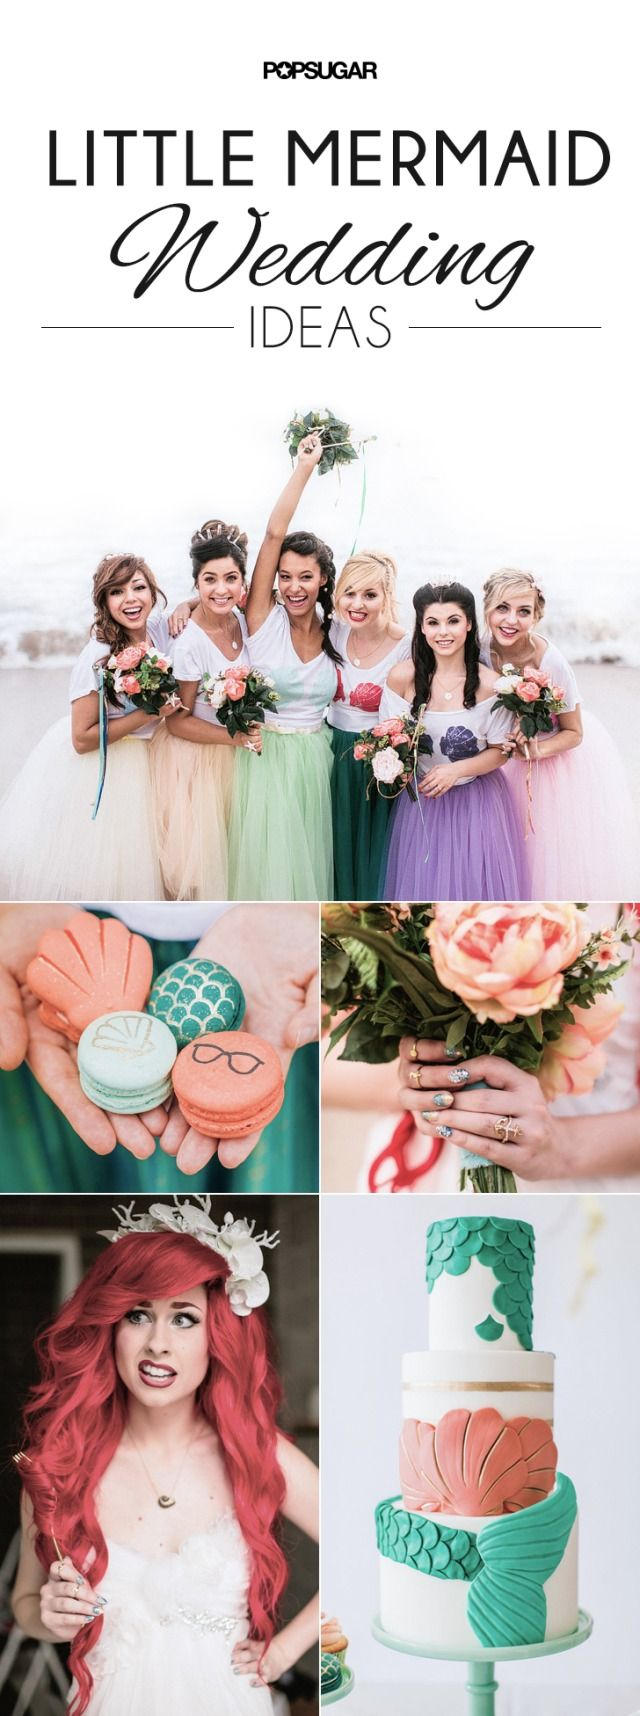 If you love the idea of having a Disney princess themed wedding, get some inspiration from this Ariel inspired bride and her Prince Eric.